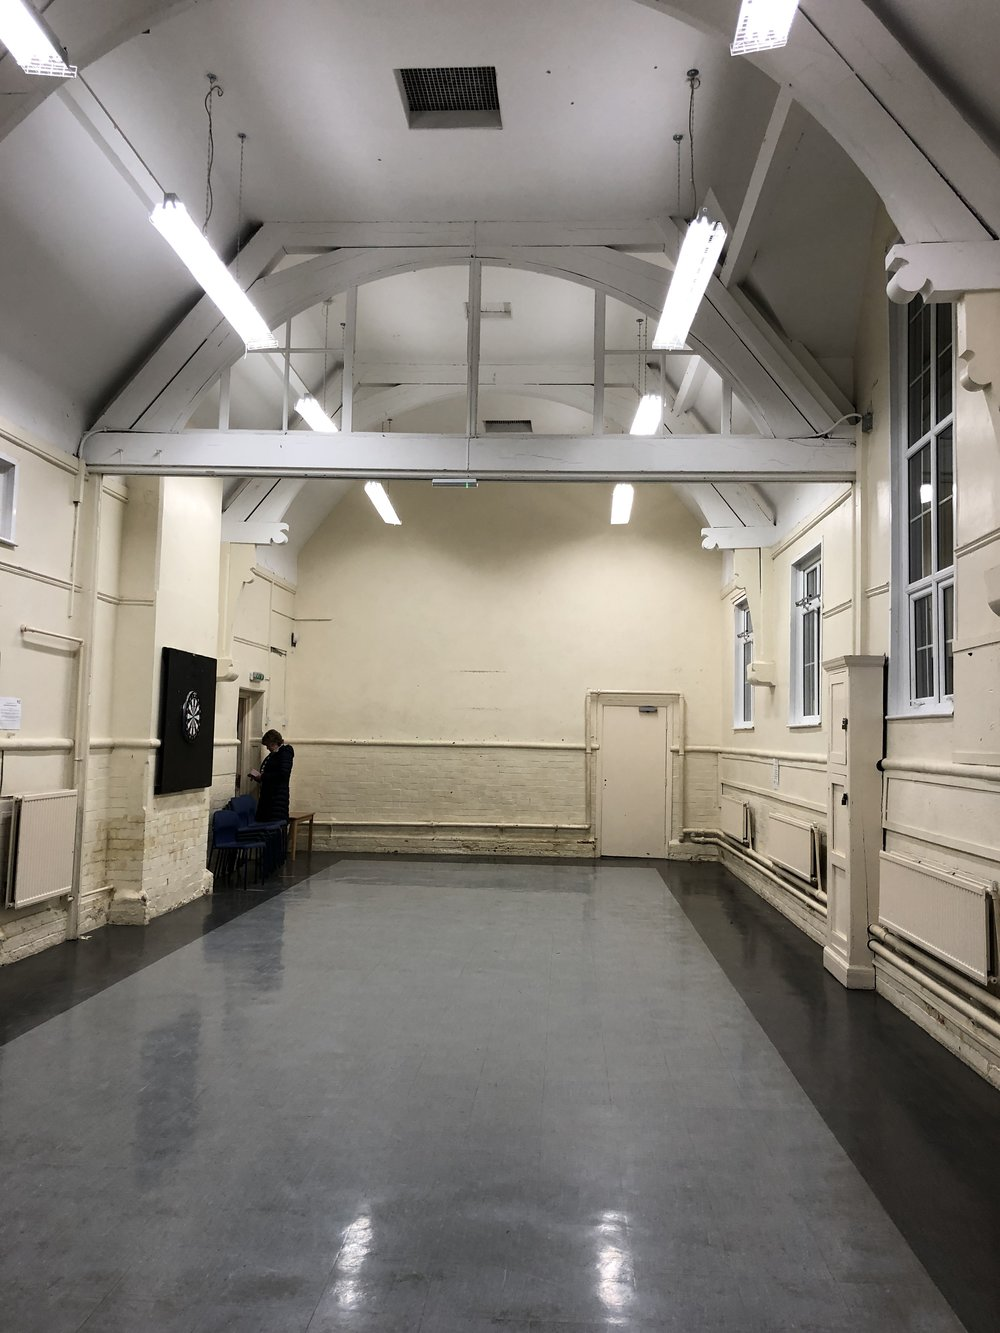 The main 'hall' in the Youth Club - one of 5 spaces in the building.